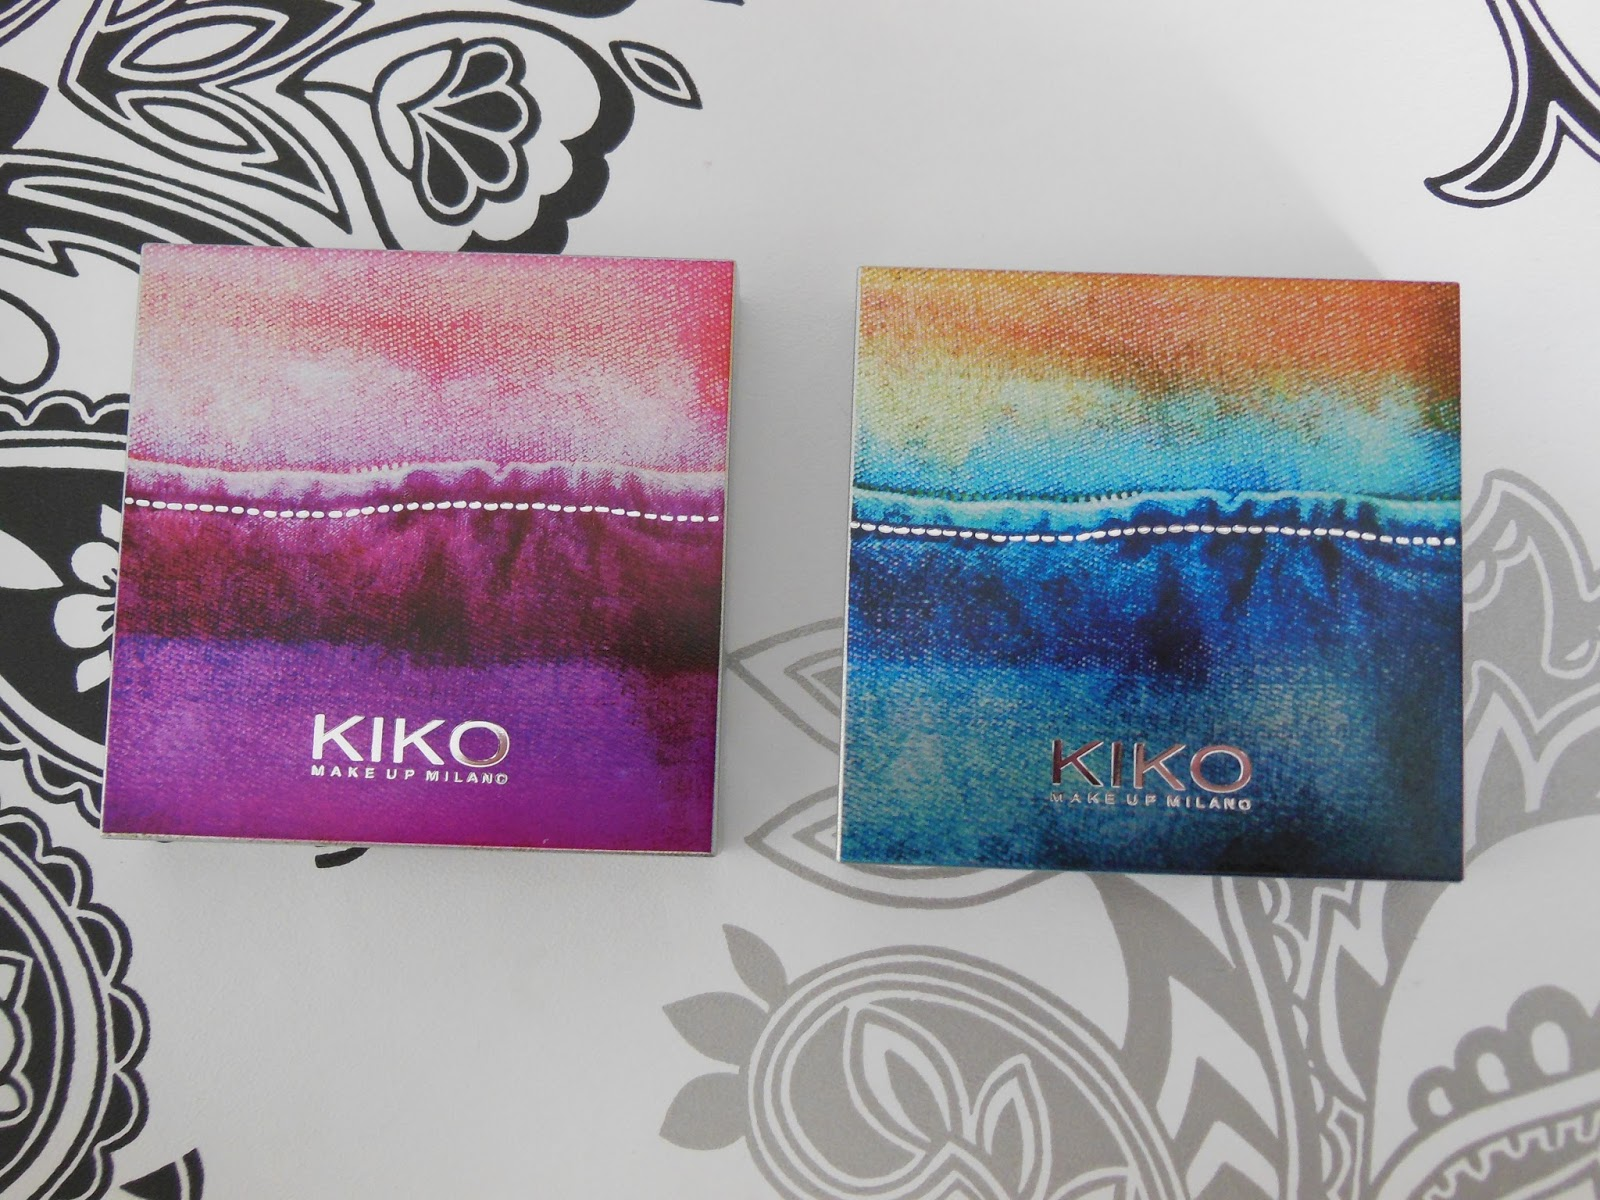 Kiko Boulevard Rock makeup collection